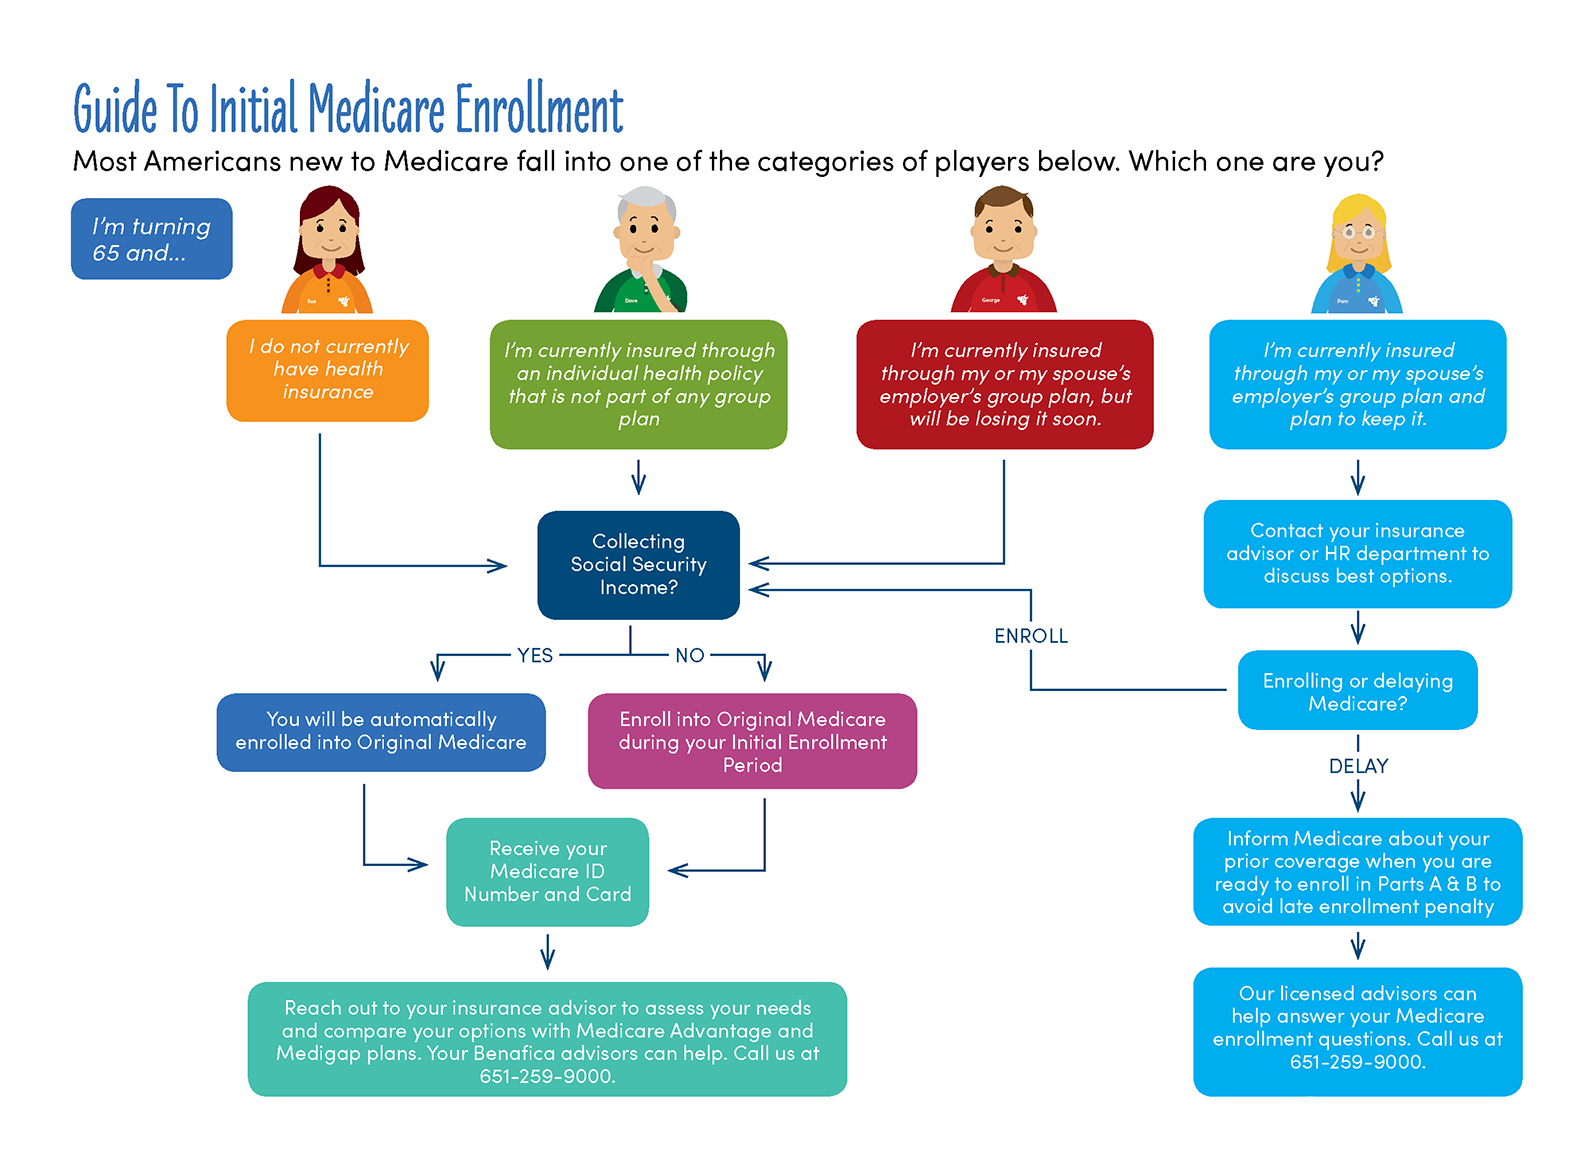 Medicare Initial Enrollment Guide Visual Flowchart